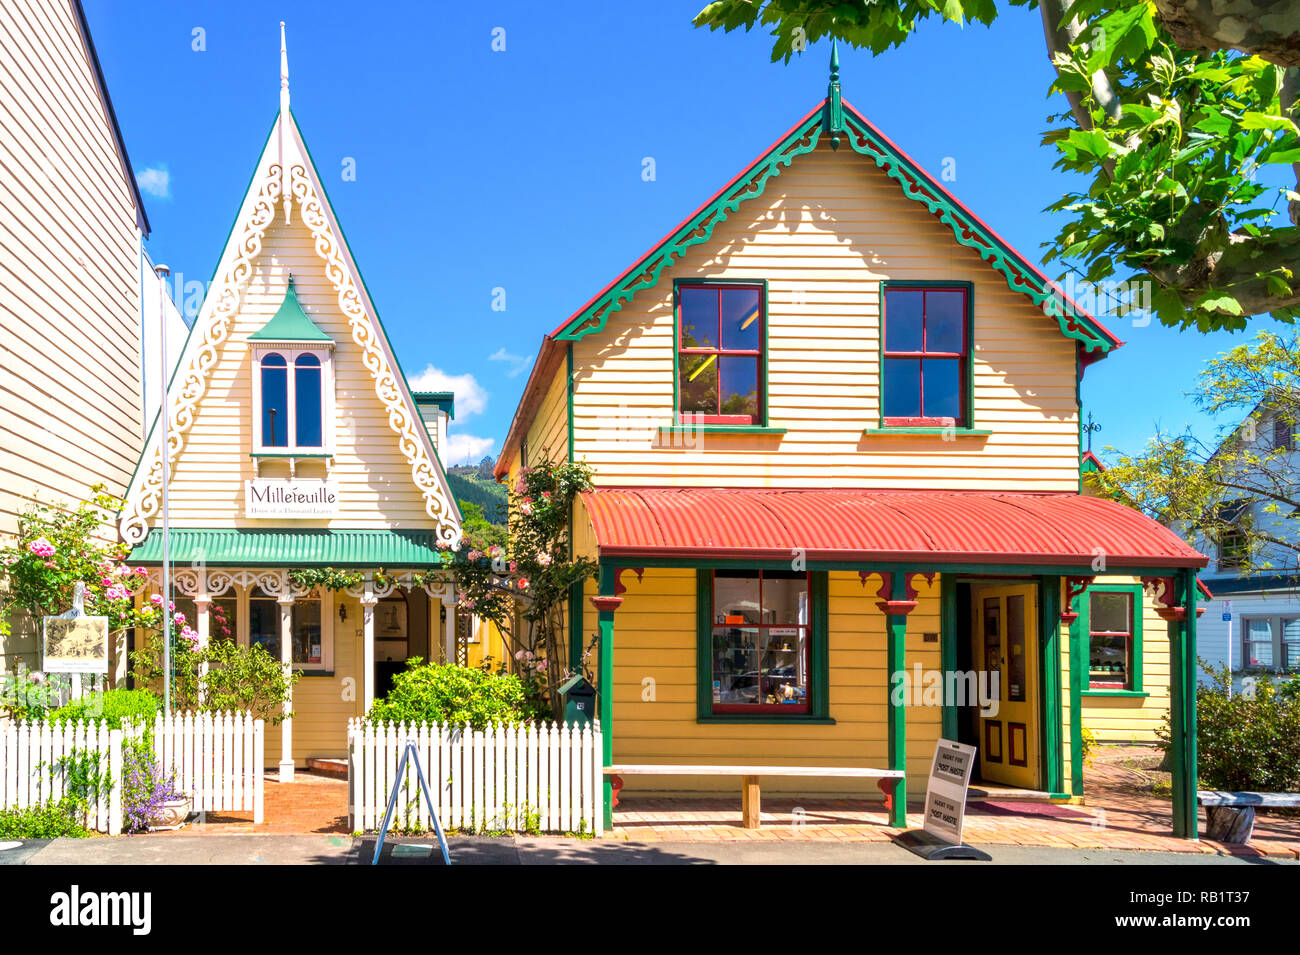 Nelson, South Street, New Zealand - Stock Image